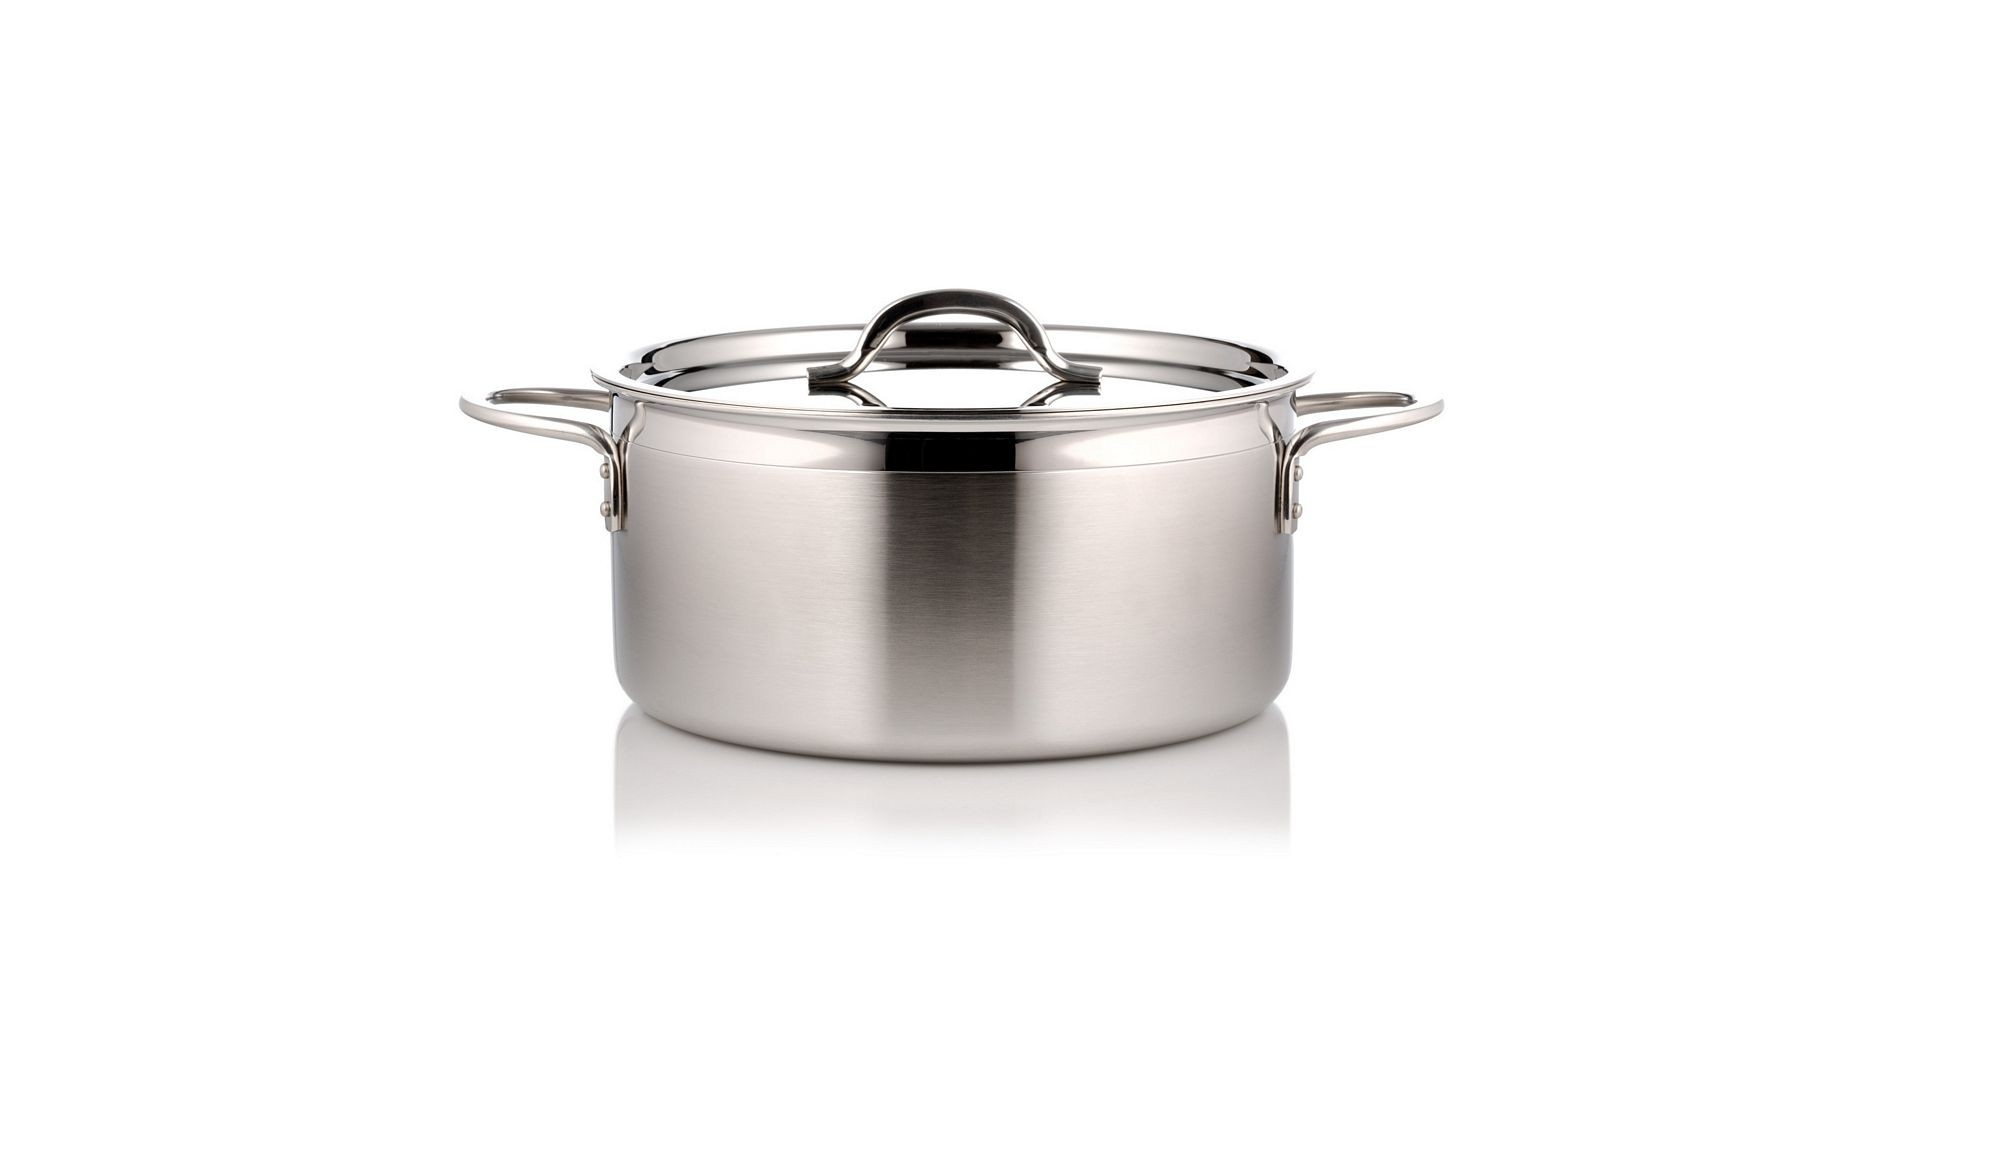 Bon Chef 60300-2ToneSS Country French Two Tone Stainless Steel Pot with Cover, 2 Qt. 9 oz.